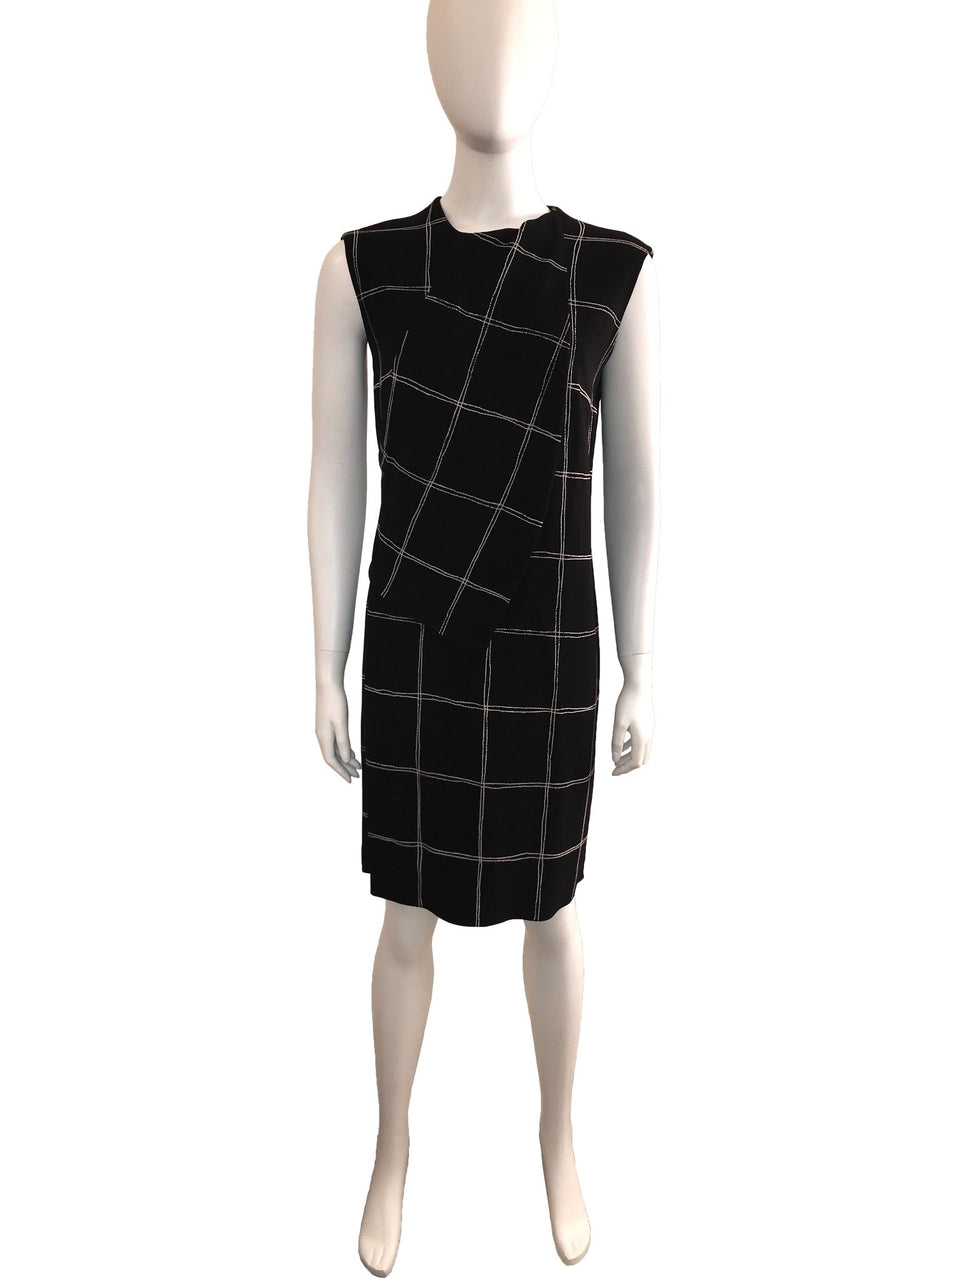 Sleeveless Shift Dress with Square Pattern